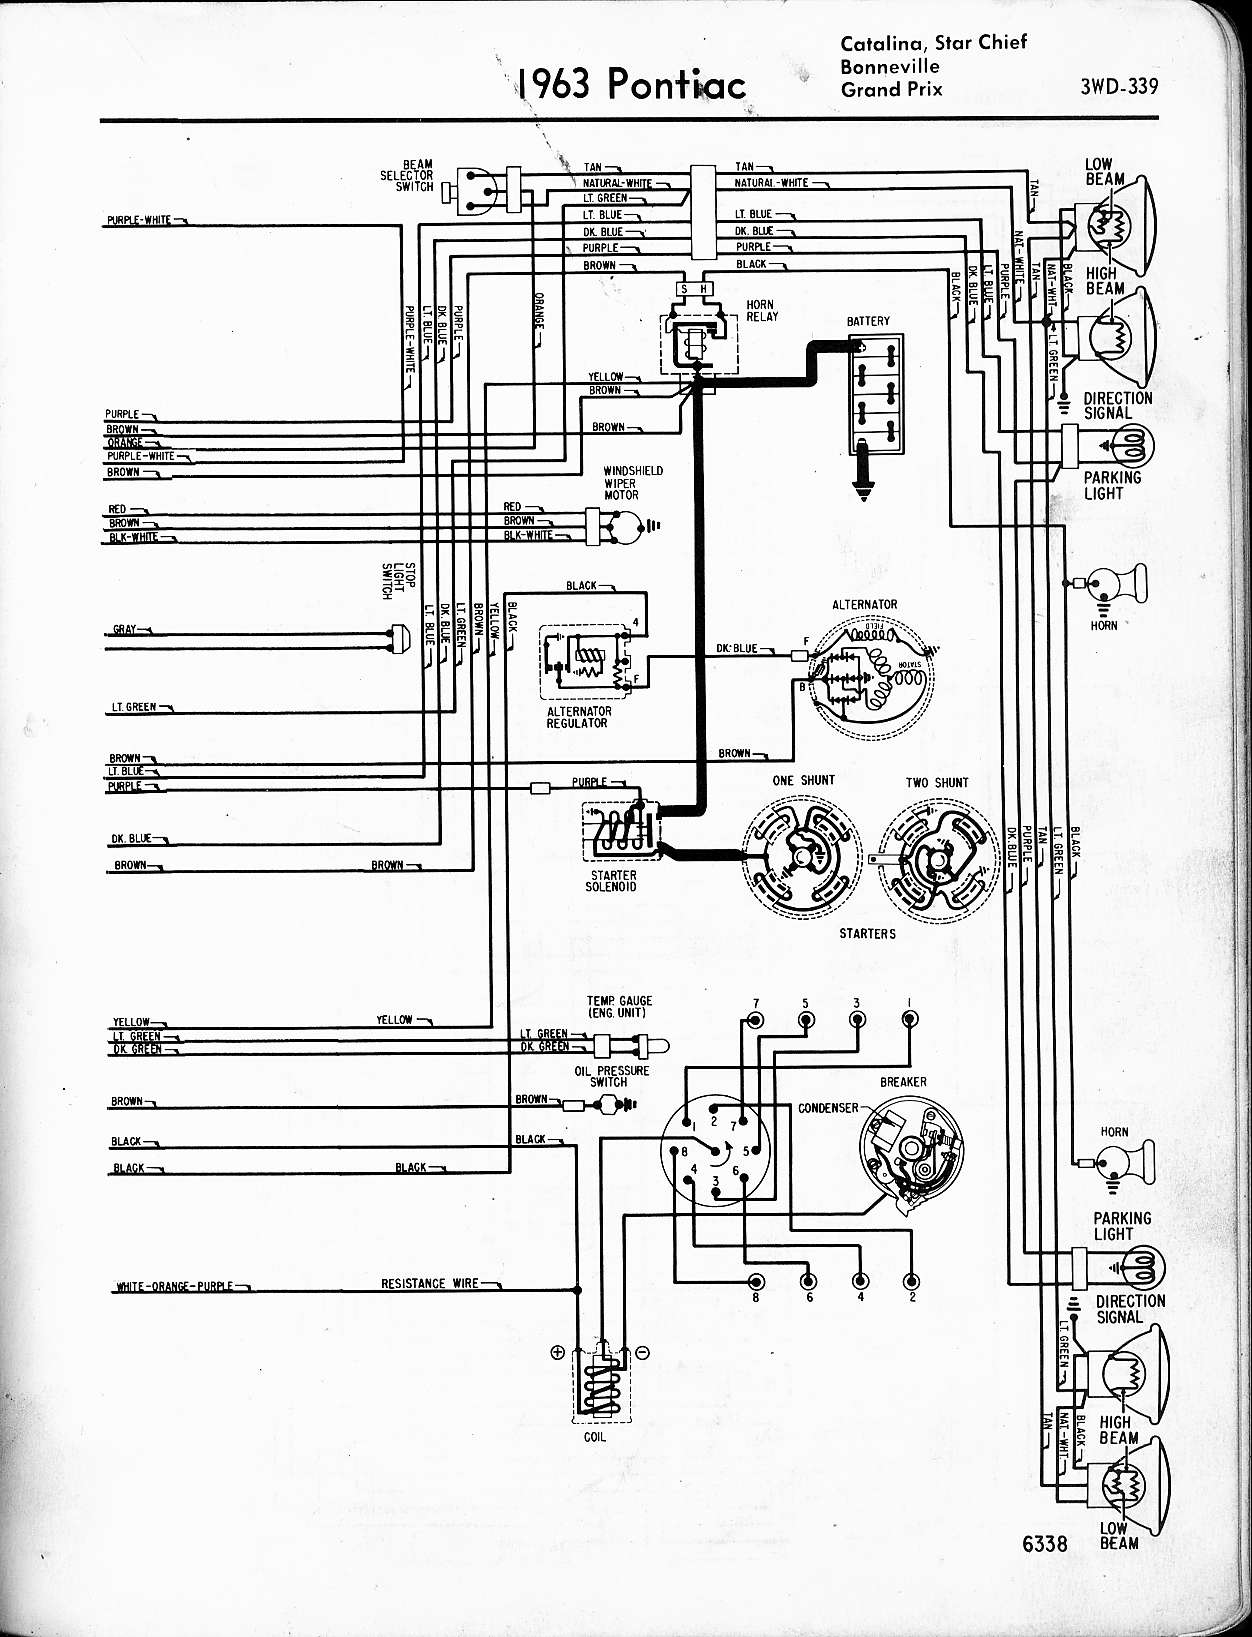 Buick Windshield Wiper And Washer Installation likewise Bcj Bframe Diagram in addition Mwire in addition  further Cim. on 1957 chevy vacuum wiper motor diagram